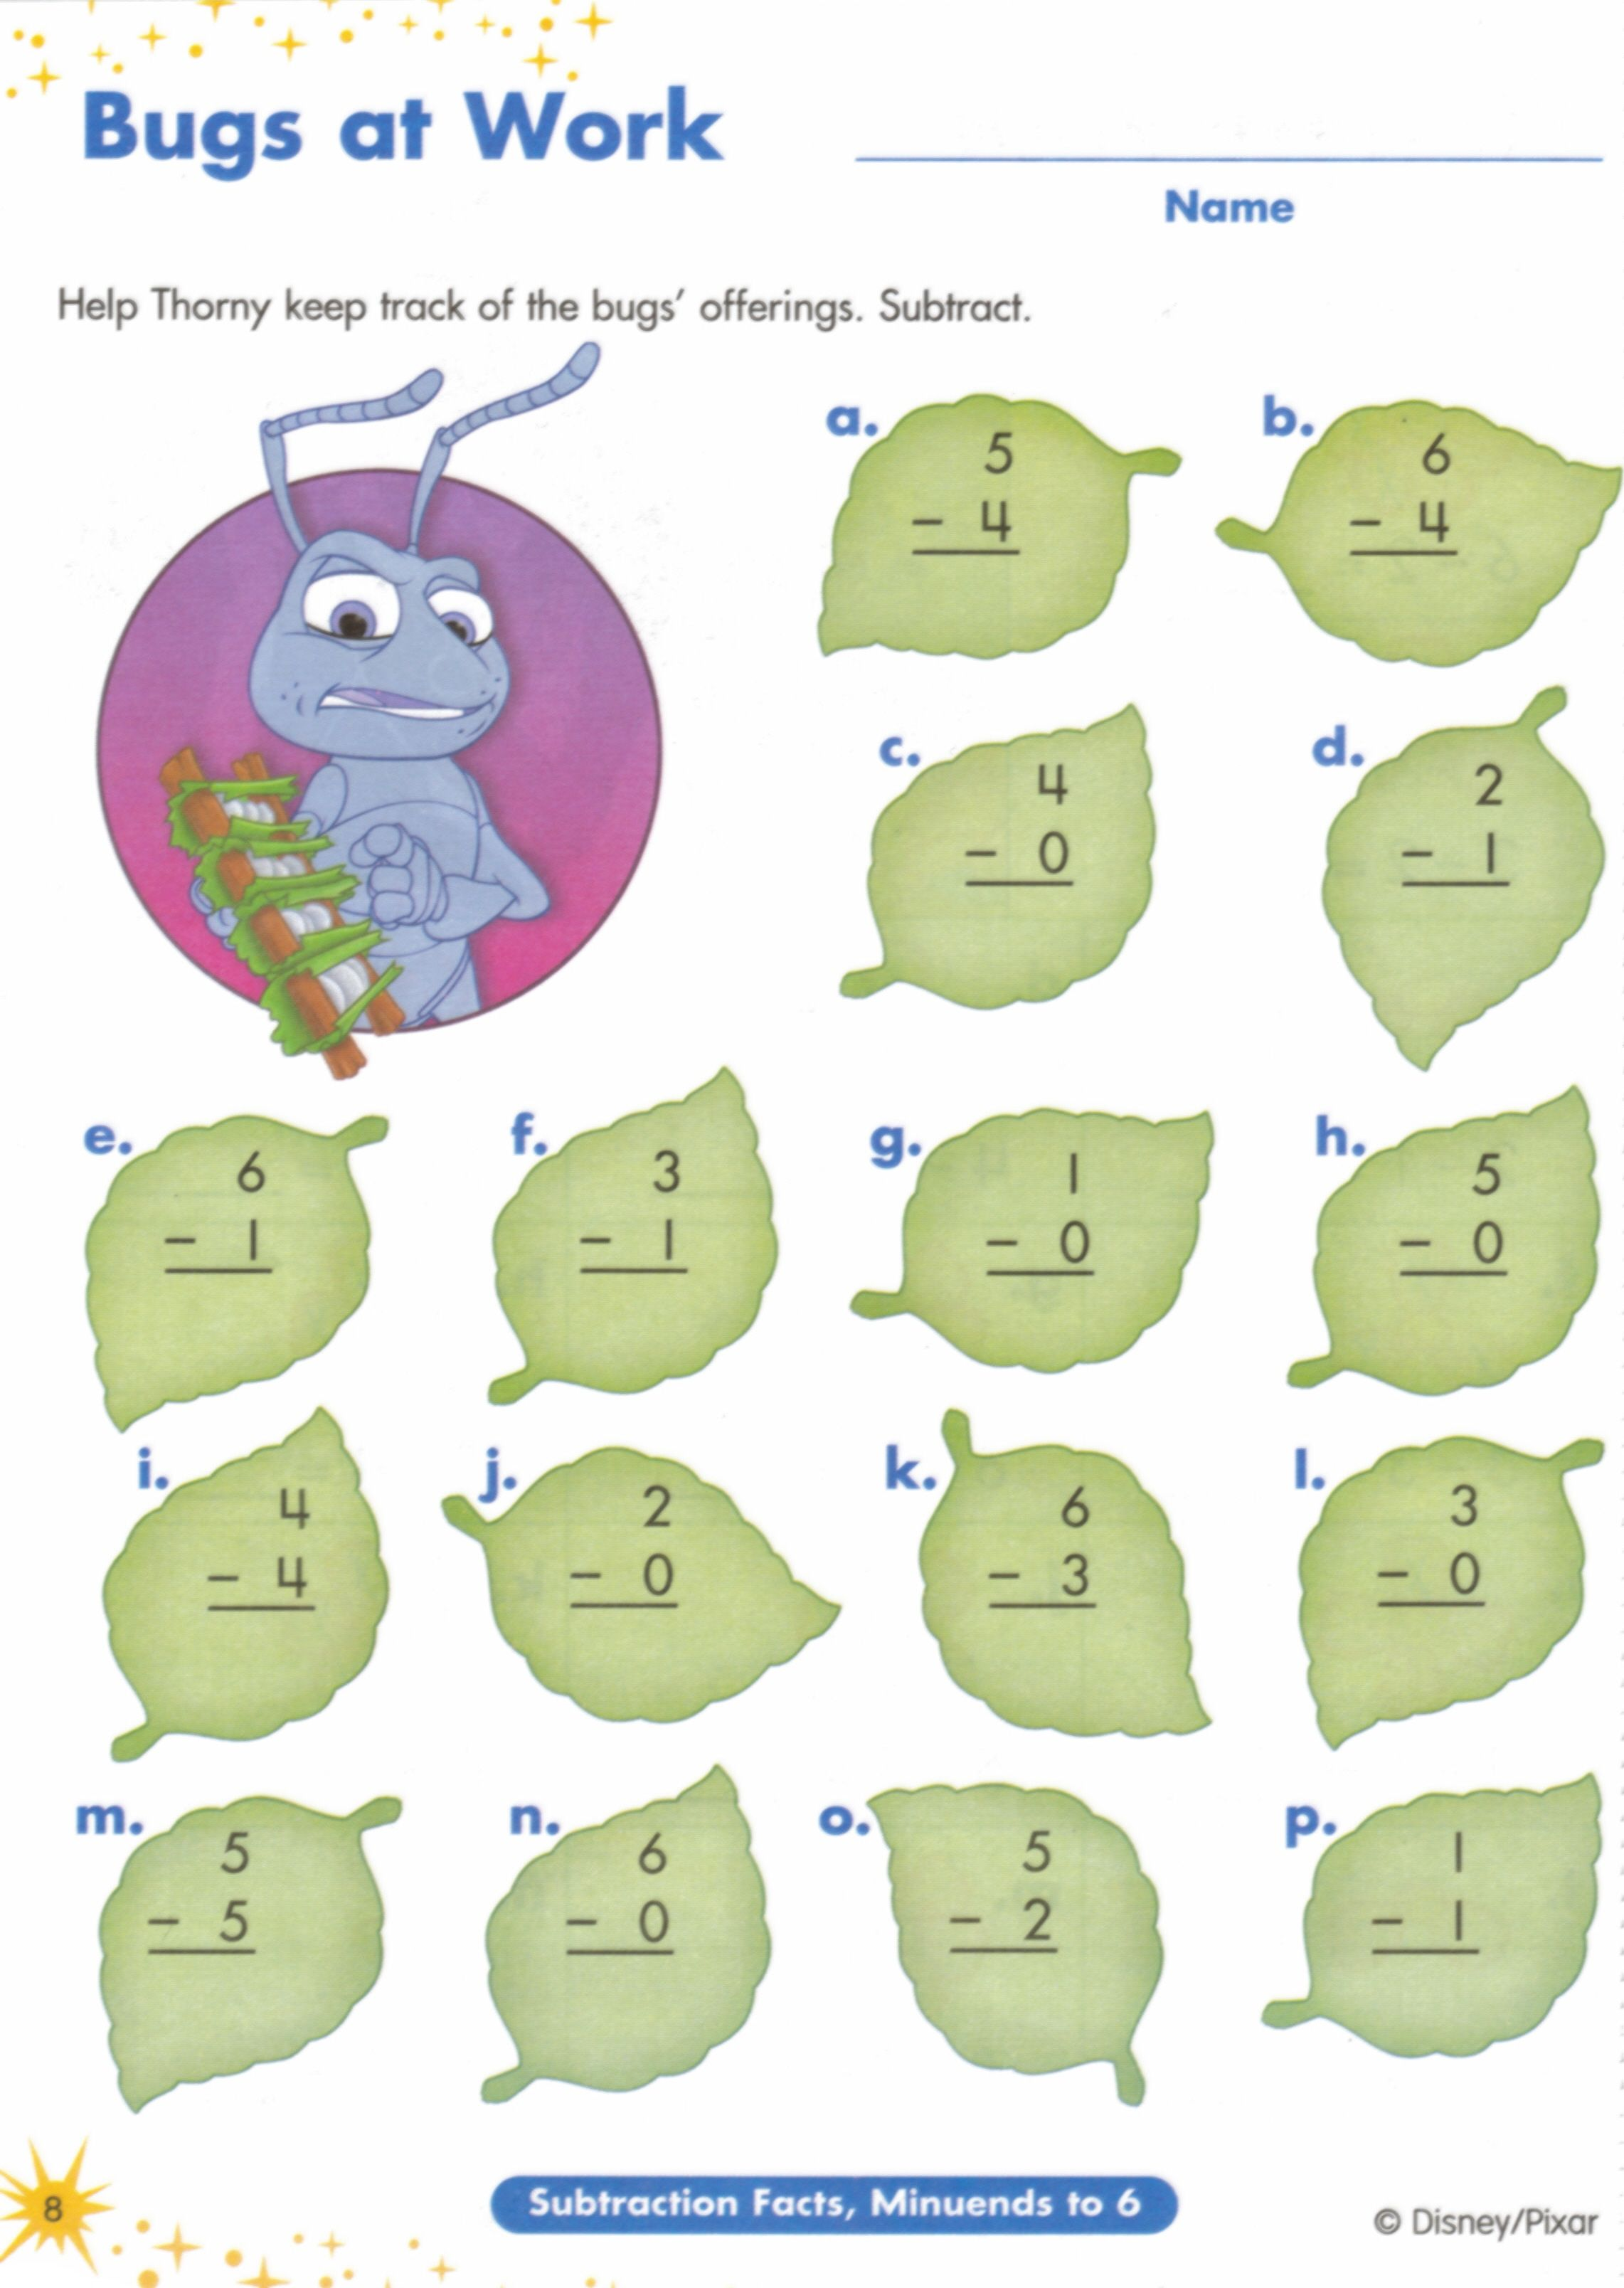 Proatmealus  Seductive  Images About Worksheets On Pinterest  Fun Facts For Kids  With Heavenly  Images About Worksheets On Pinterest  Fun Facts For Kids Earth Day Worksheets And Jungles With Easy On The Eye Parallel Perpendicular Lines Worksheets Also Parts Of A Short Story Worksheet In Addition Worksheets For Rounding Numbers And Holiday Activity Worksheets As Well As European Countries Worksheet Additionally Gingerbread Man Sequencing Worksheet From Pinterestcom With Proatmealus  Heavenly  Images About Worksheets On Pinterest  Fun Facts For Kids  With Easy On The Eye  Images About Worksheets On Pinterest  Fun Facts For Kids Earth Day Worksheets And Jungles And Seductive Parallel Perpendicular Lines Worksheets Also Parts Of A Short Story Worksheet In Addition Worksheets For Rounding Numbers From Pinterestcom